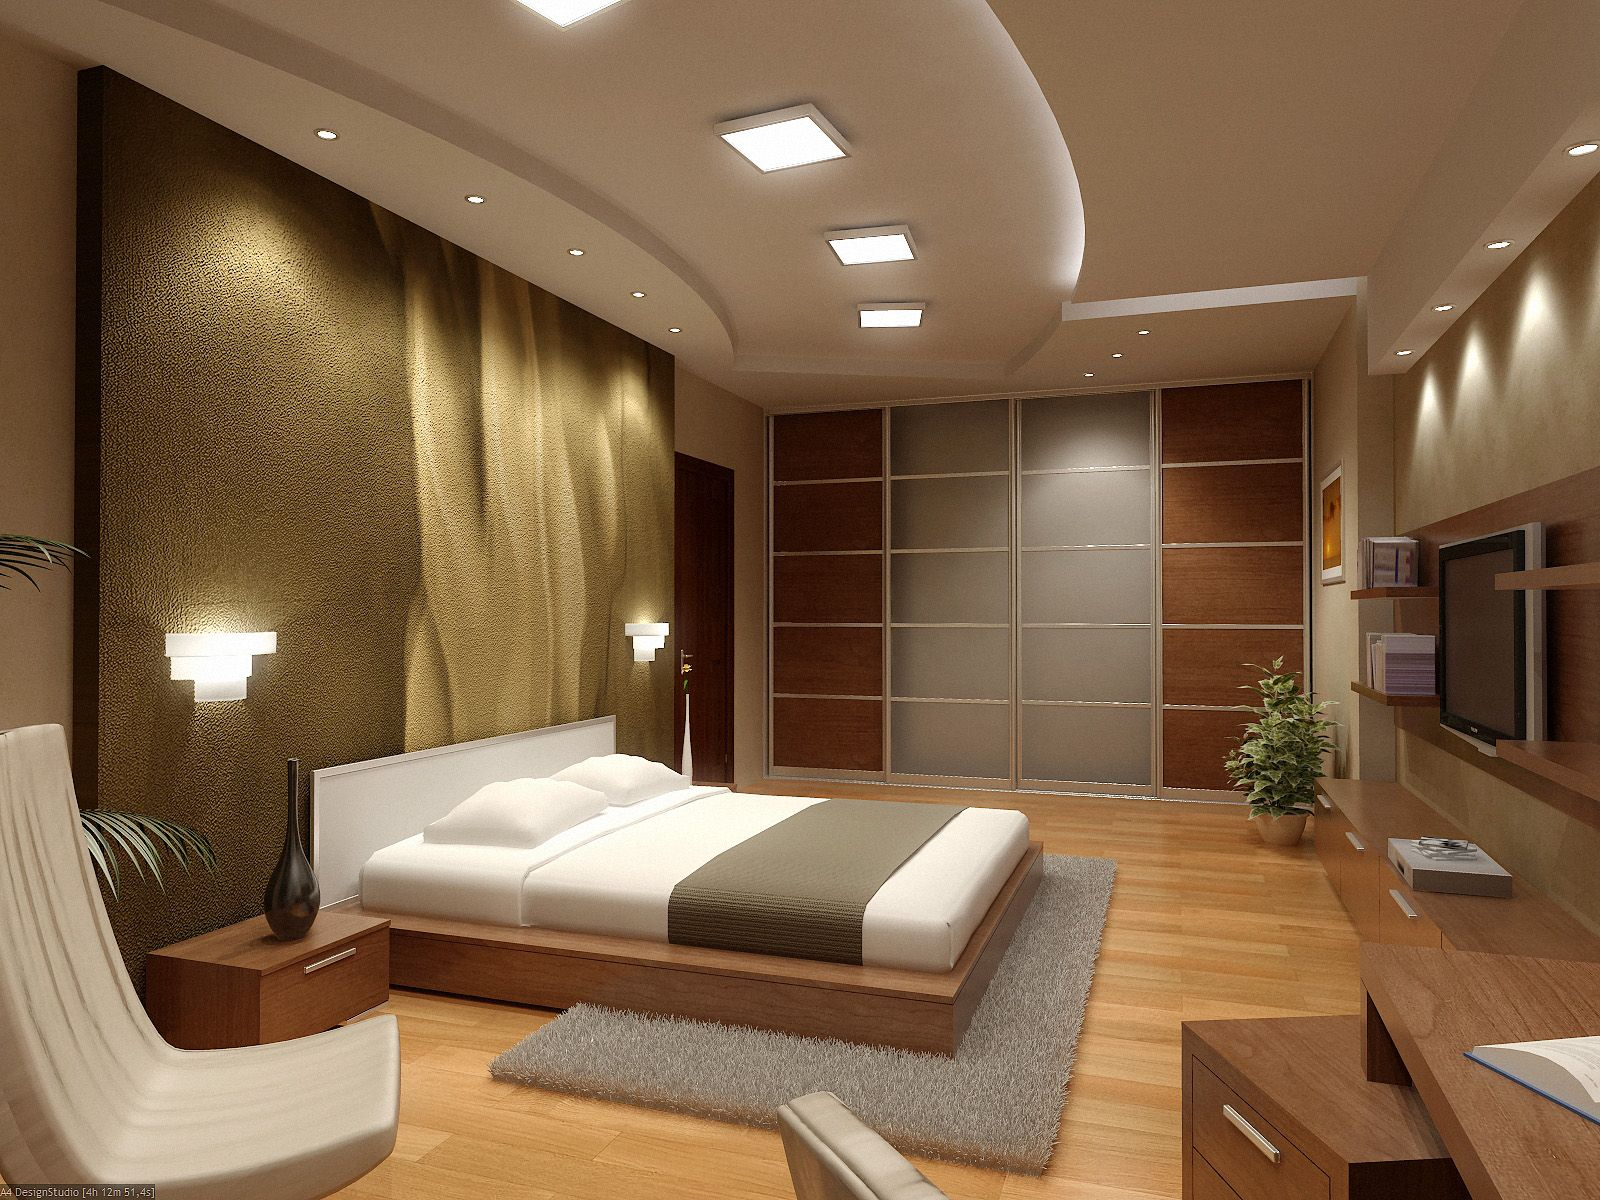 Great Modern Bedroom Interior Design Ideas 1600 x 1200 · 367 kB · jpeg